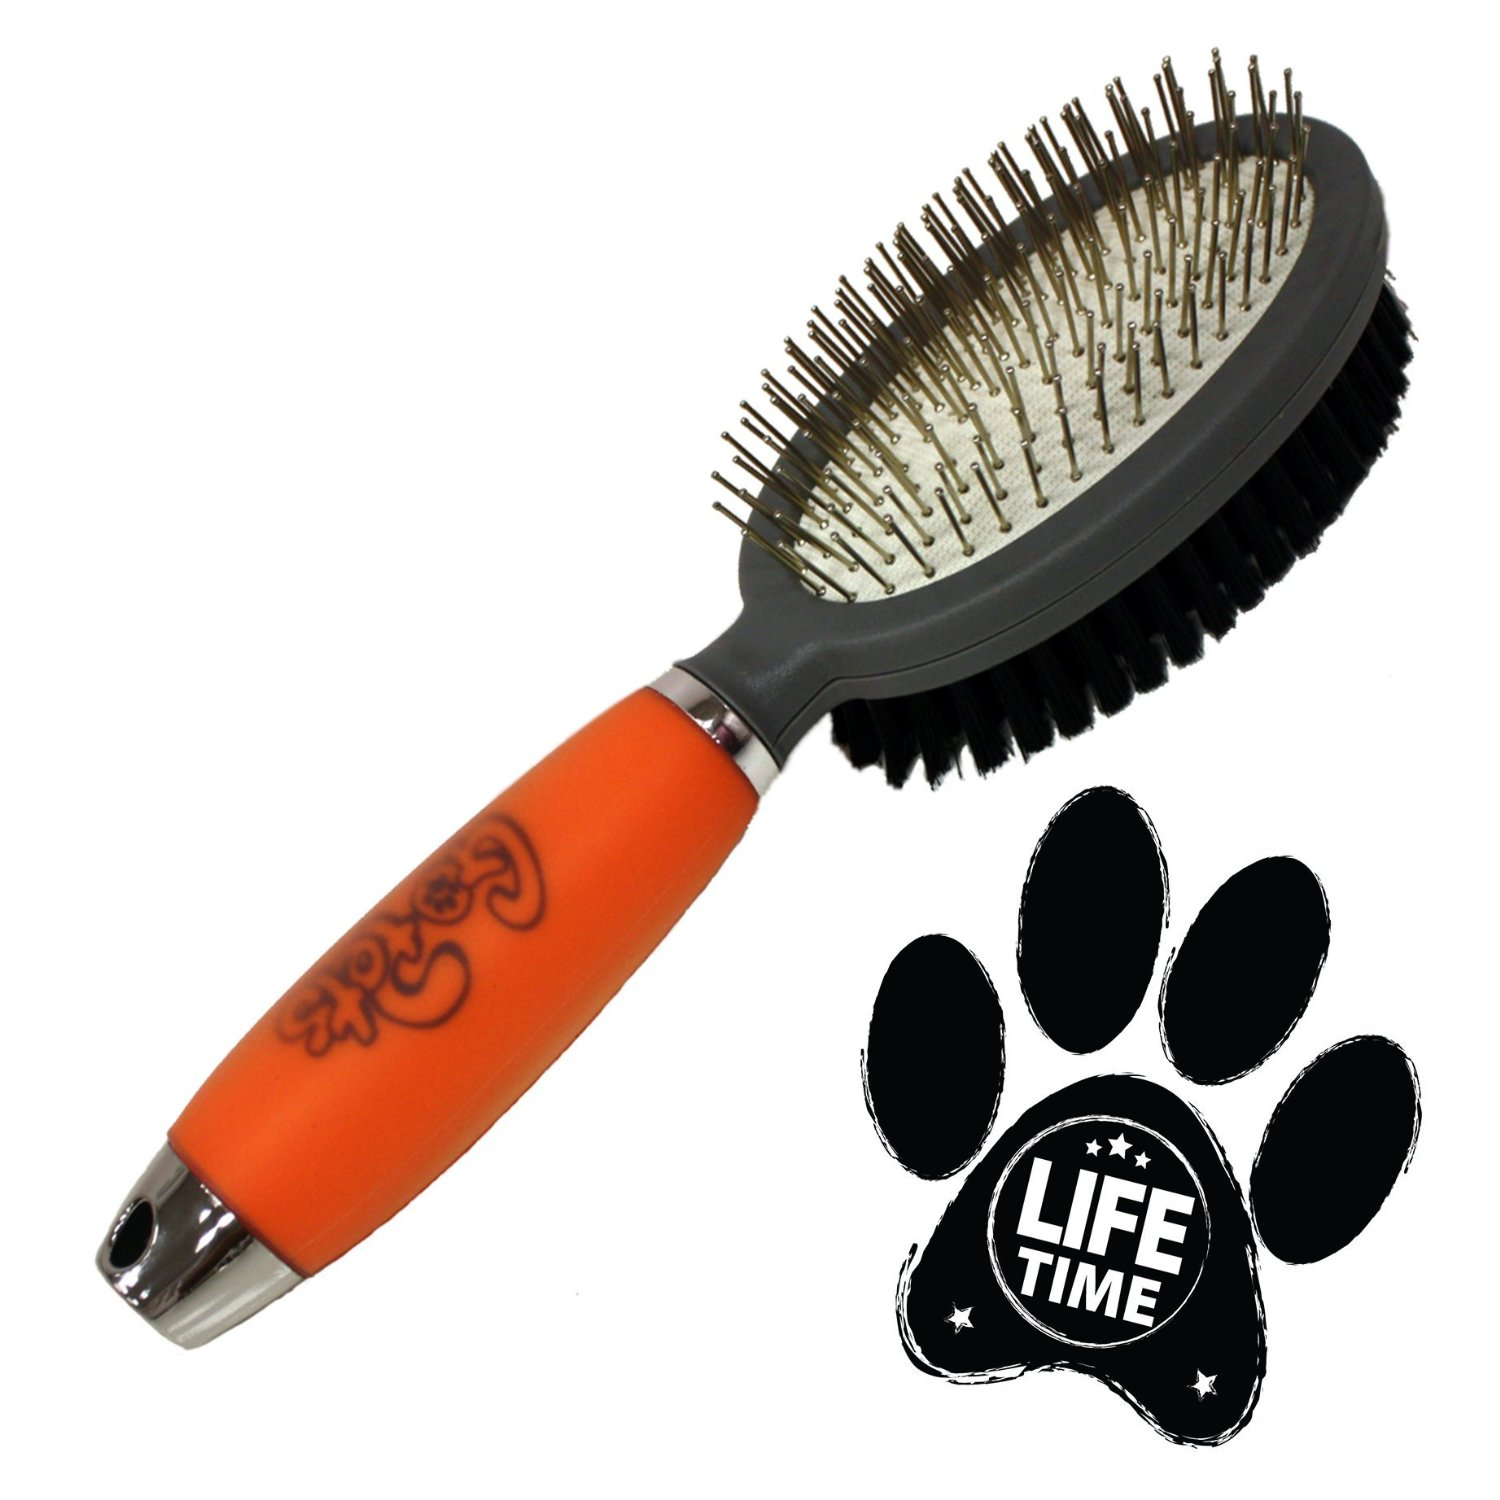 Go Pets - Professional Double Sided Pin & Bristle Brush for Dogs